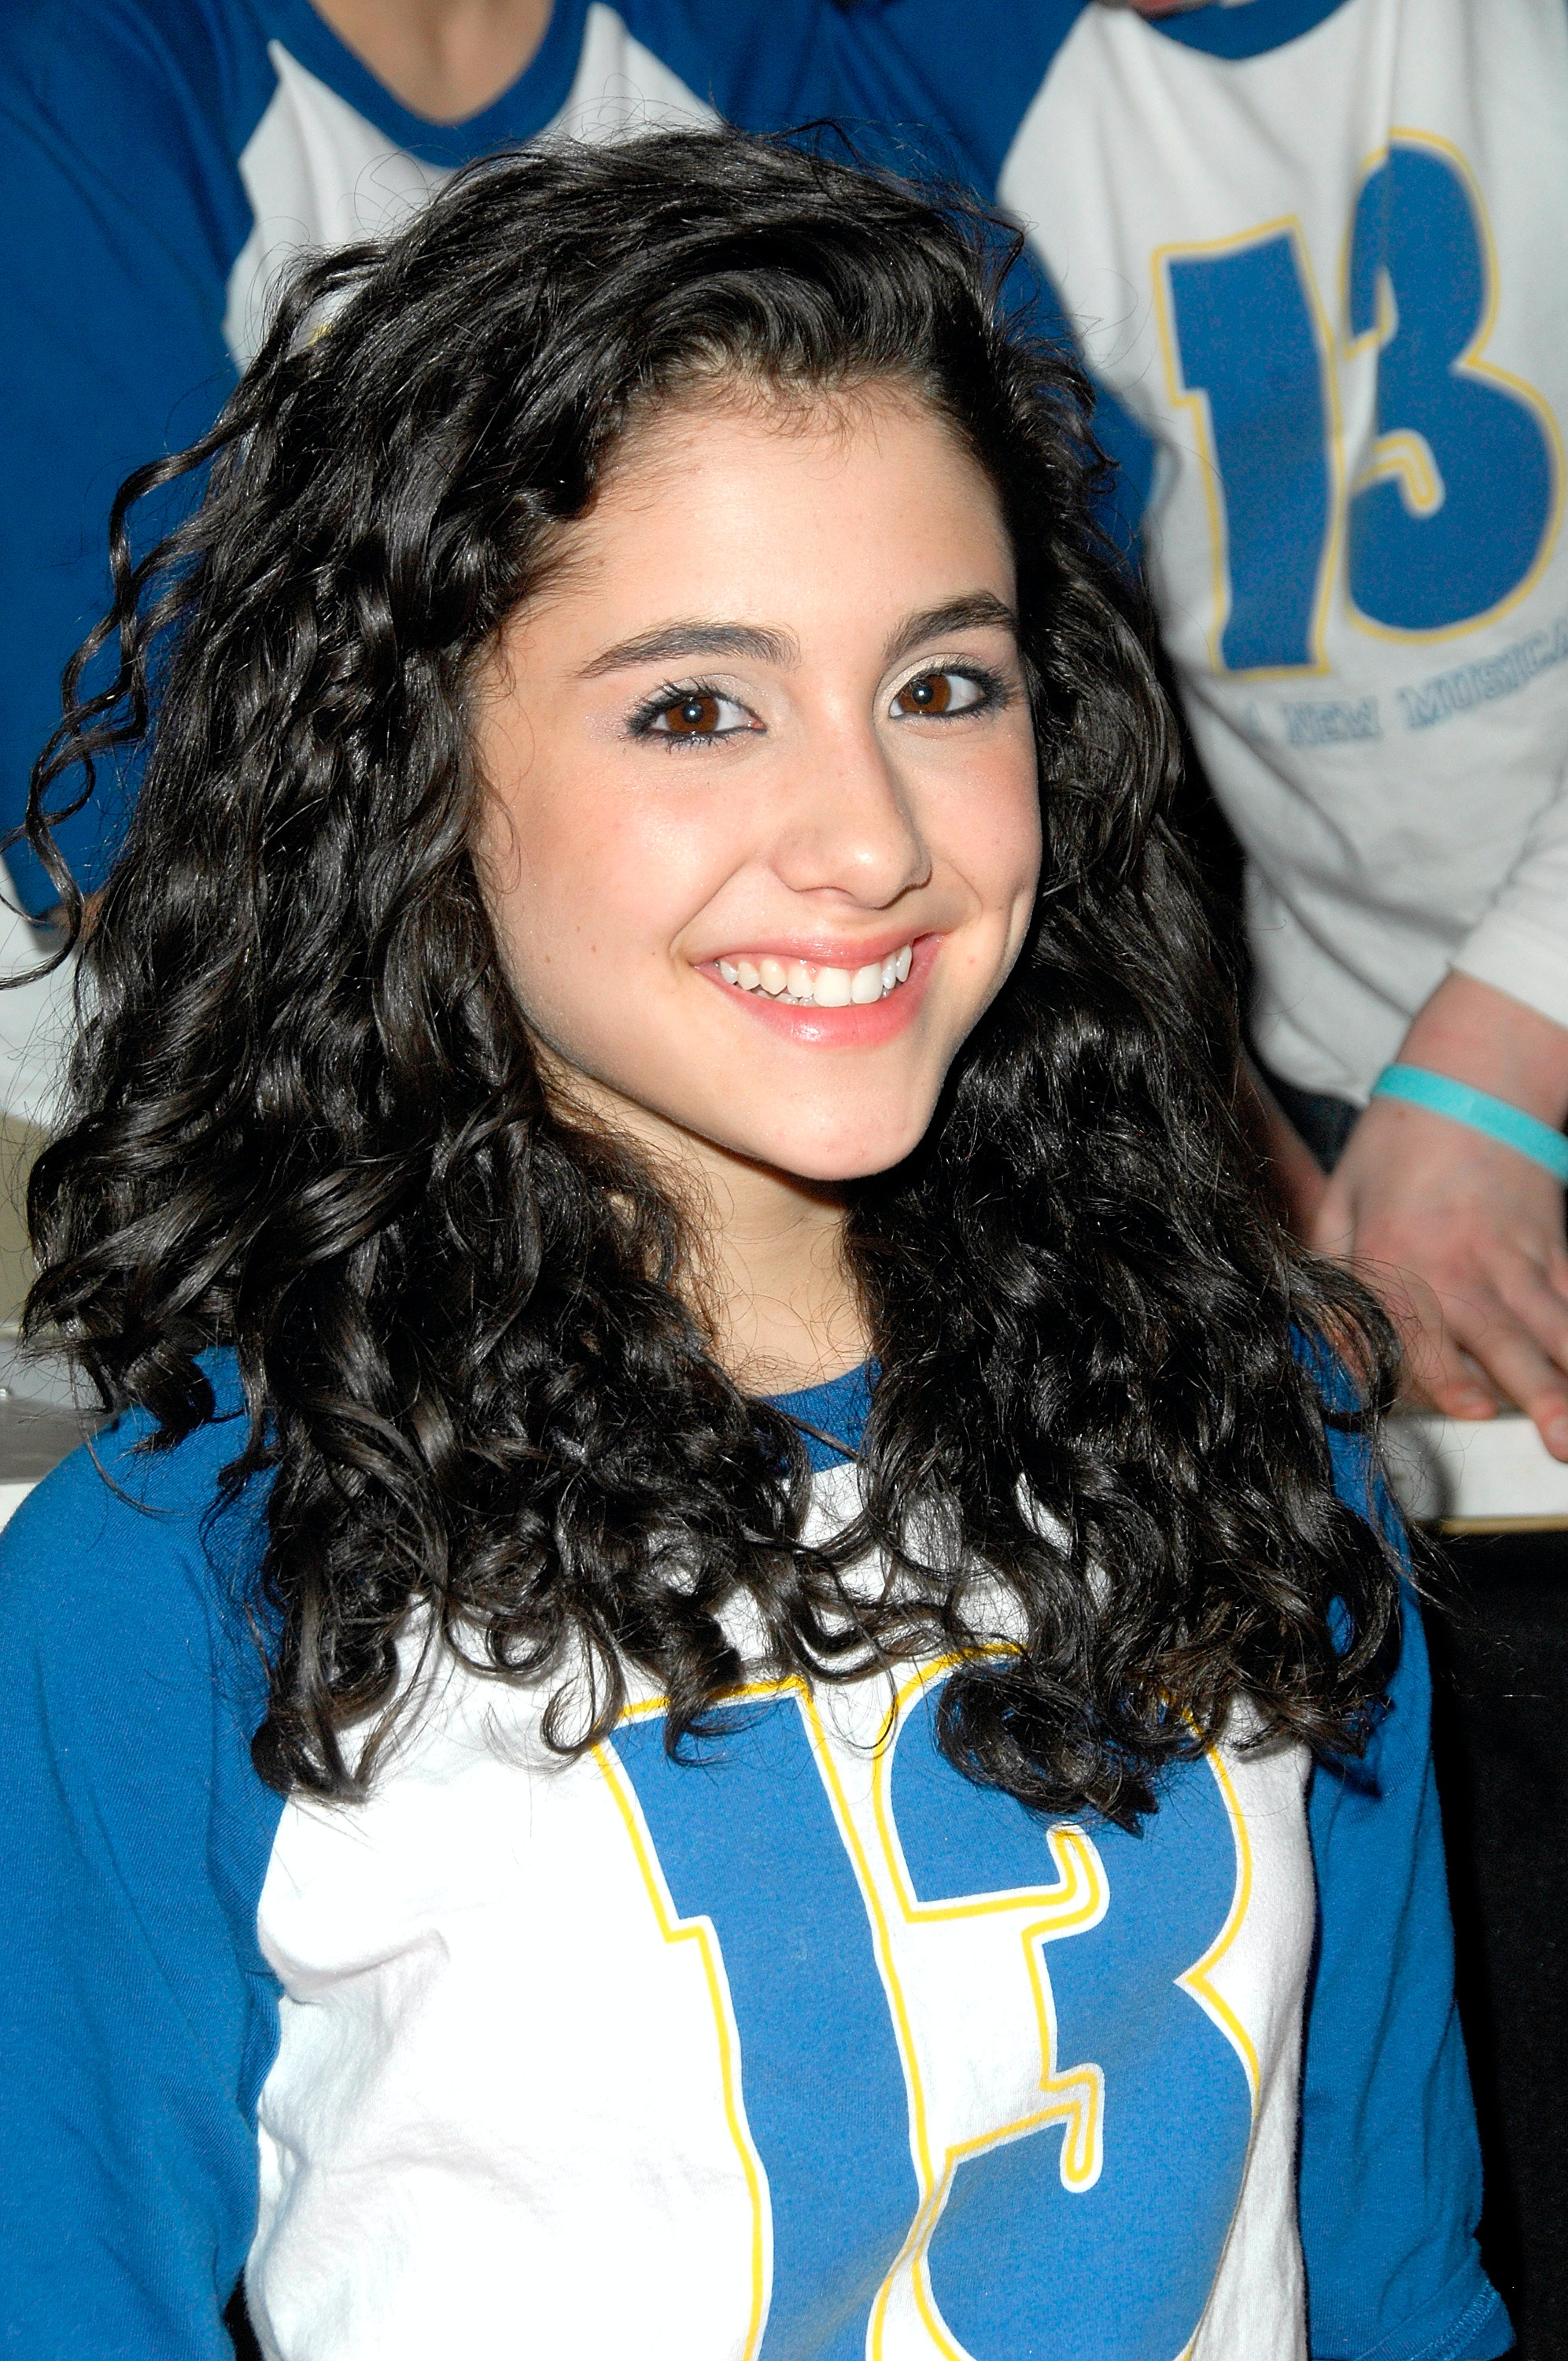 7 Ariana Grande Curly Hair Photos That Make Her Unrecognizable Photos